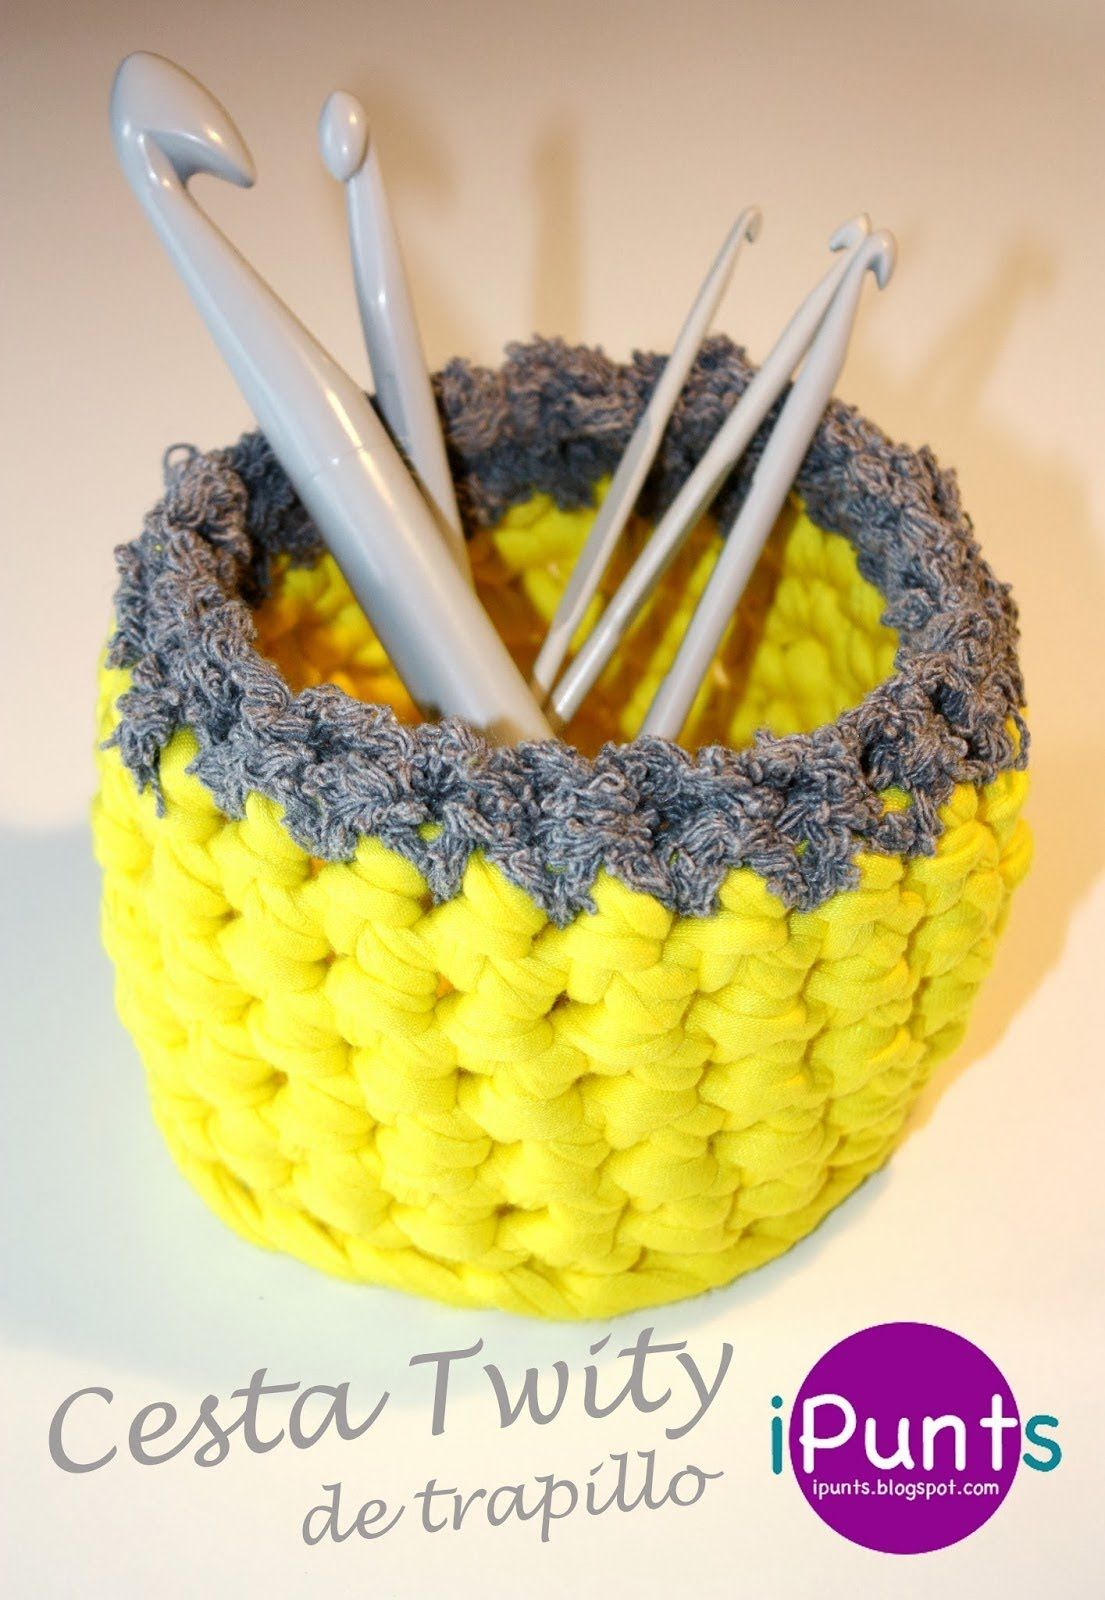 Tutorial Cesta de trapillo dos colores | crochet | Pinterest ...